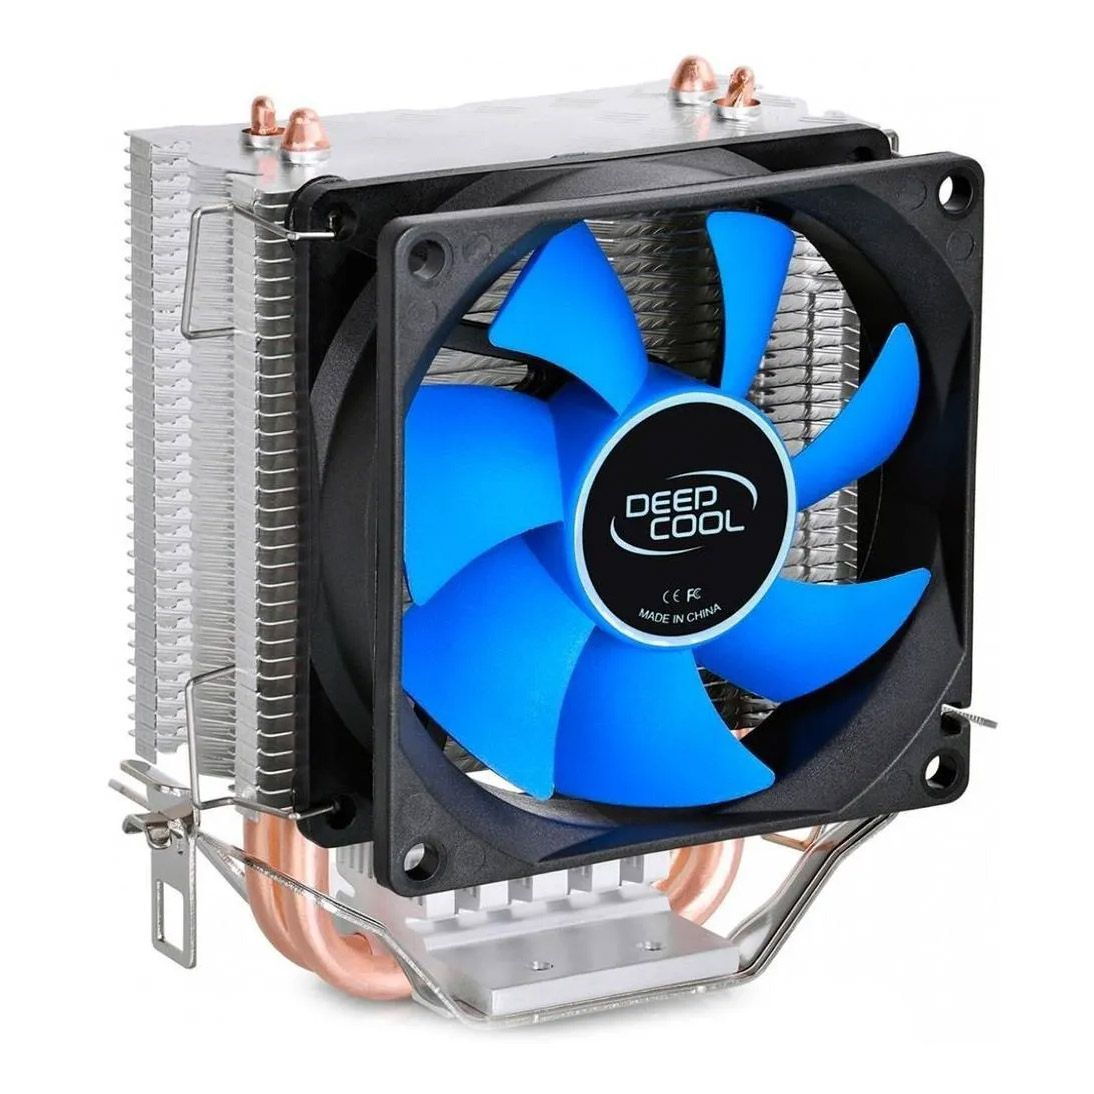 Cooler DeepCool Ice Edge Mini Fs V2.0 Intel E Amd Air - Ice Edge Mini Fs V2.0